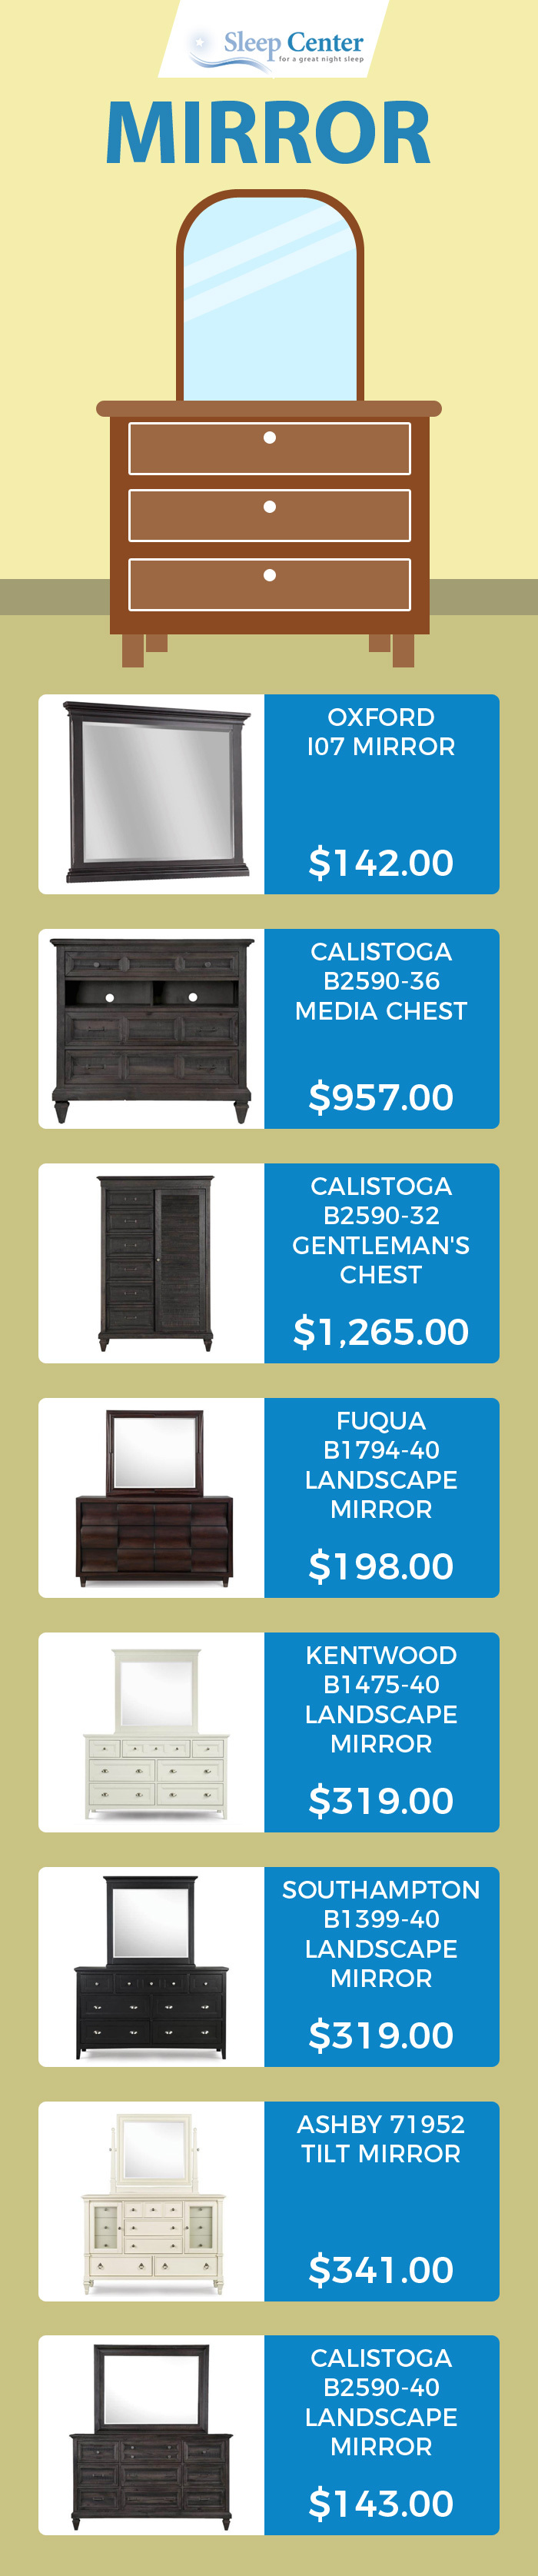 Sleep Center - A Trusted Store to Buy Bedroom Mirrors in Sacramento